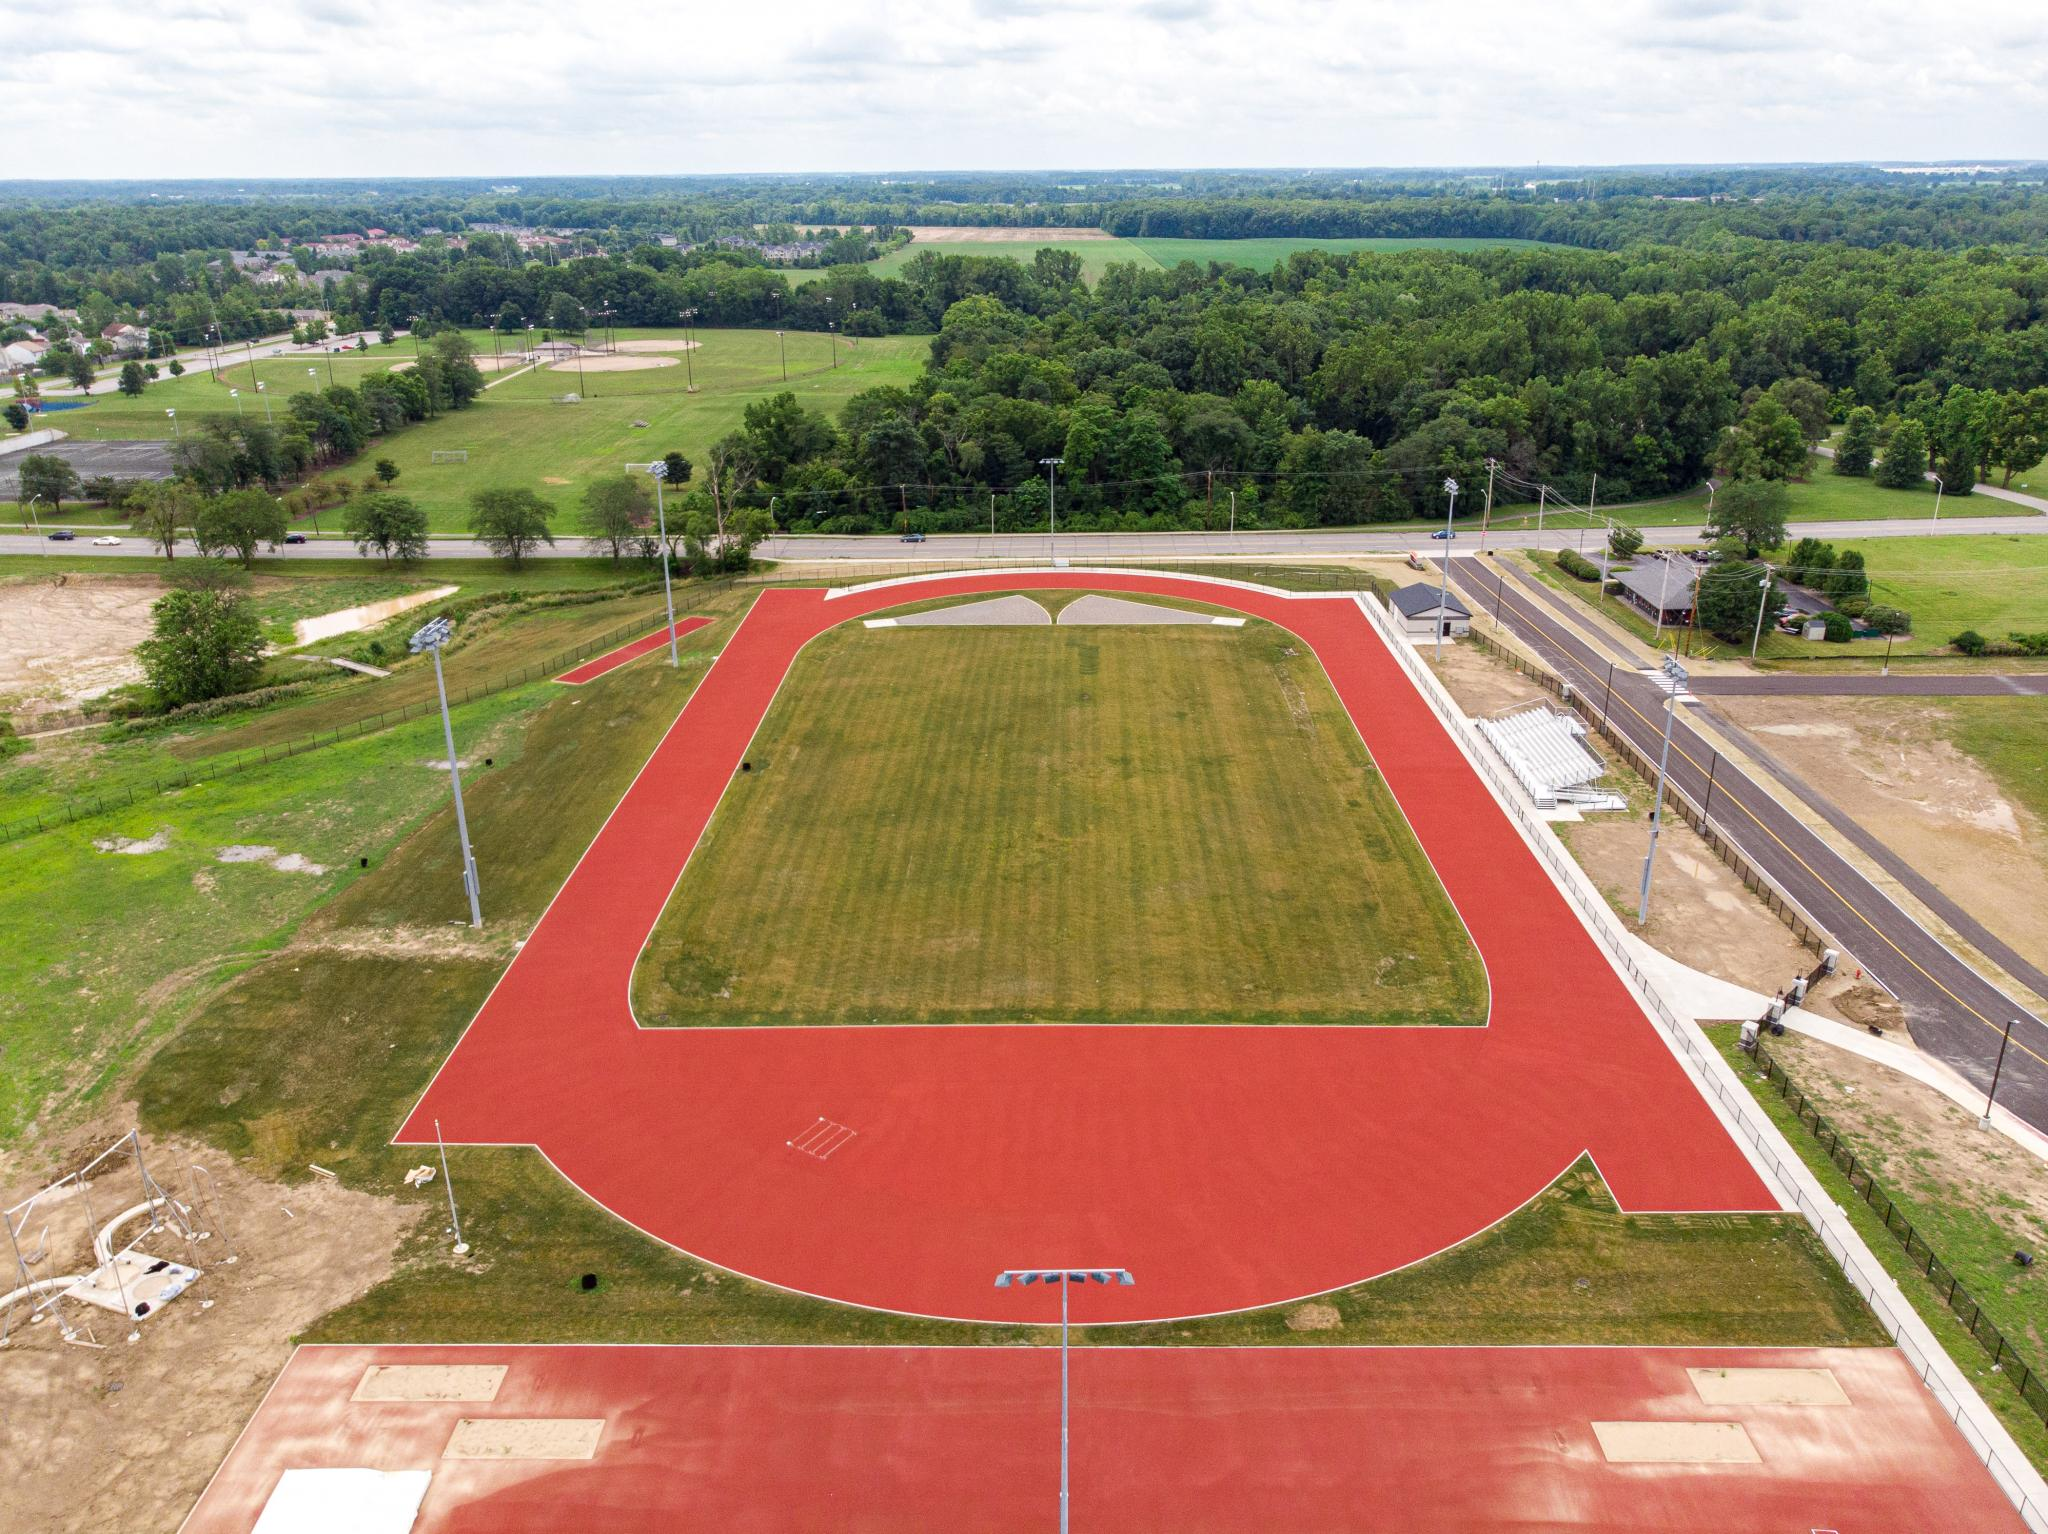 aerial image of a track & field event field